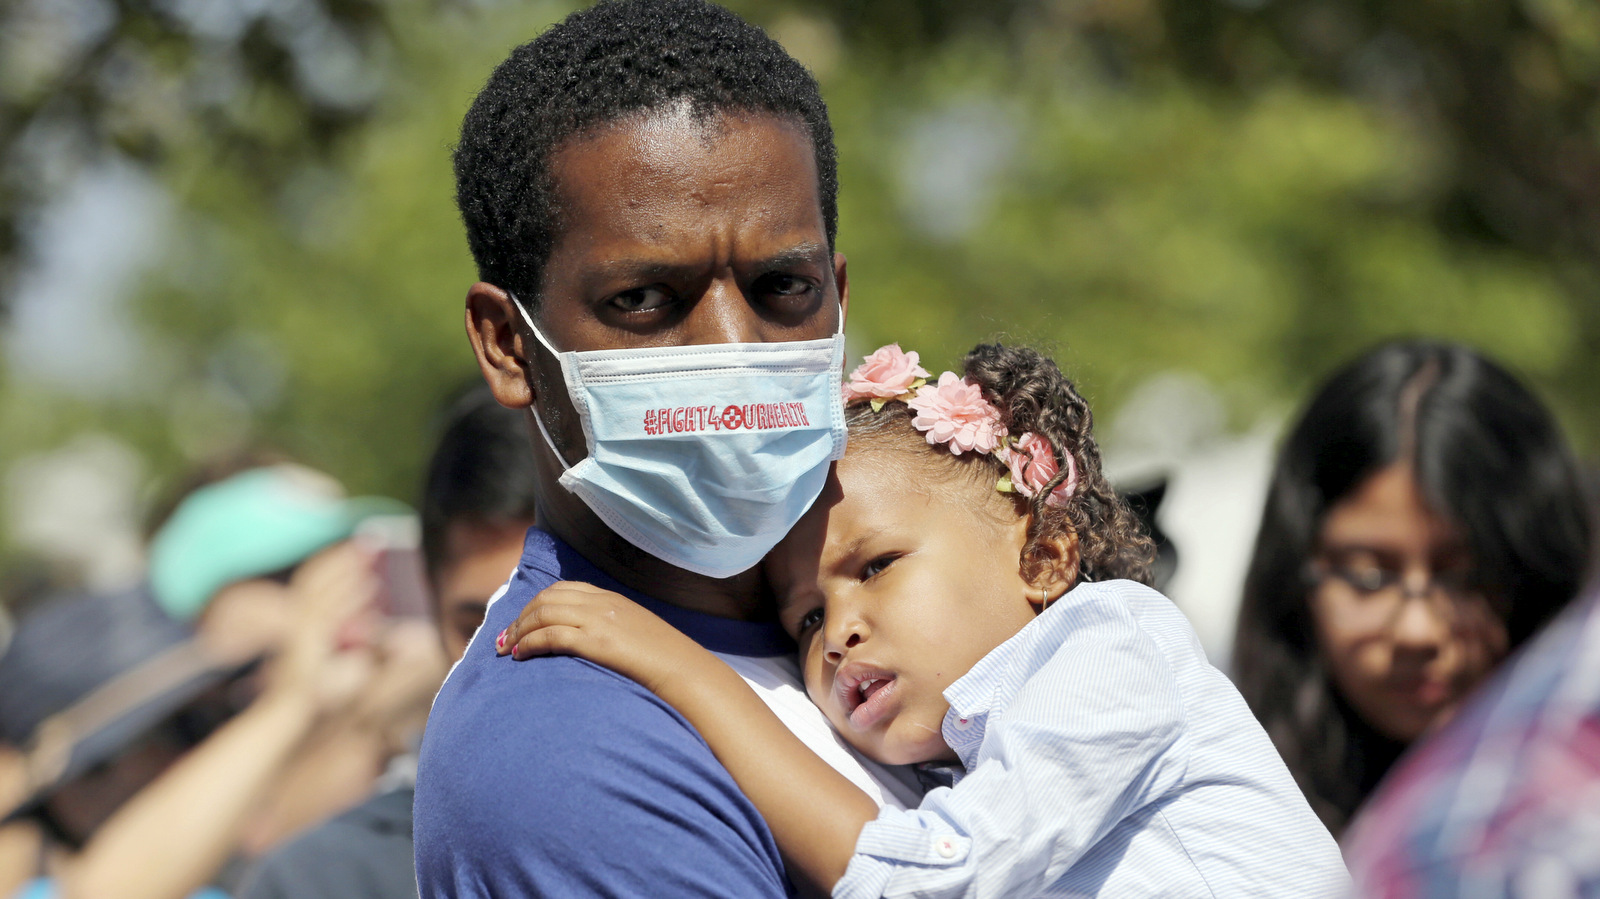 Anthony Reese, who says he is homeless, holds his daughter Makailei Pratt, 3, at a rally led by U.S. Sen. Kamala Harris, D-Calif., with doctors, nurses, health care workers and patients who will lose access to health care or see costs rise, at Harbor-UCLA Medical Center in Torrance, Calif., July 3, 2017. (AP/Reed Saxon)